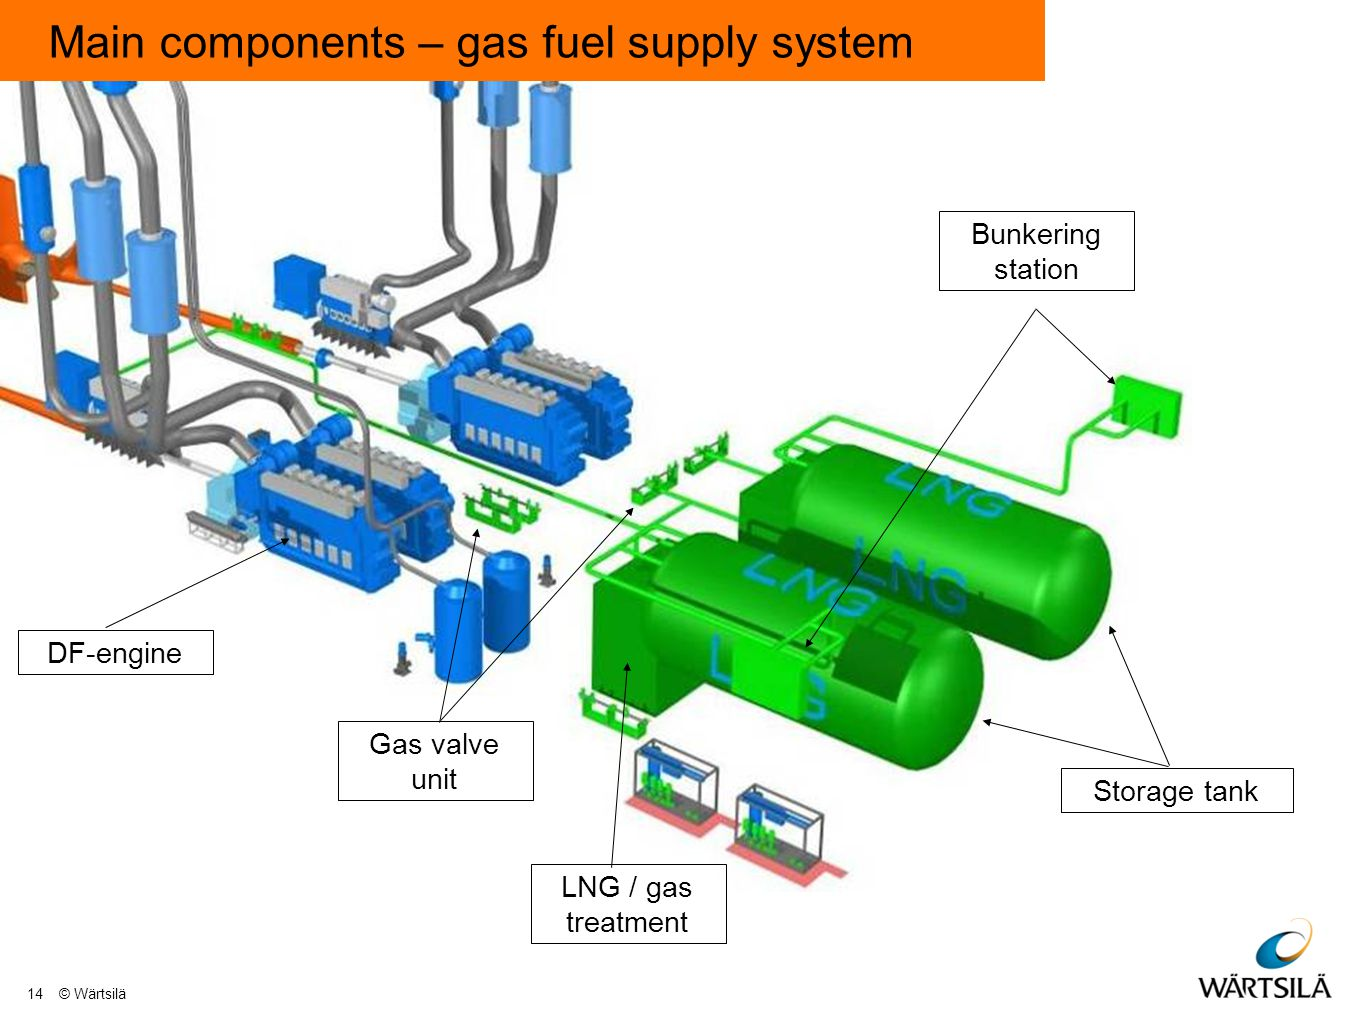 hight resolution of 16 main components gas fuel supply system storage tank bunkering station lng gas treatment gas valve unit df engine 14 w rtsil